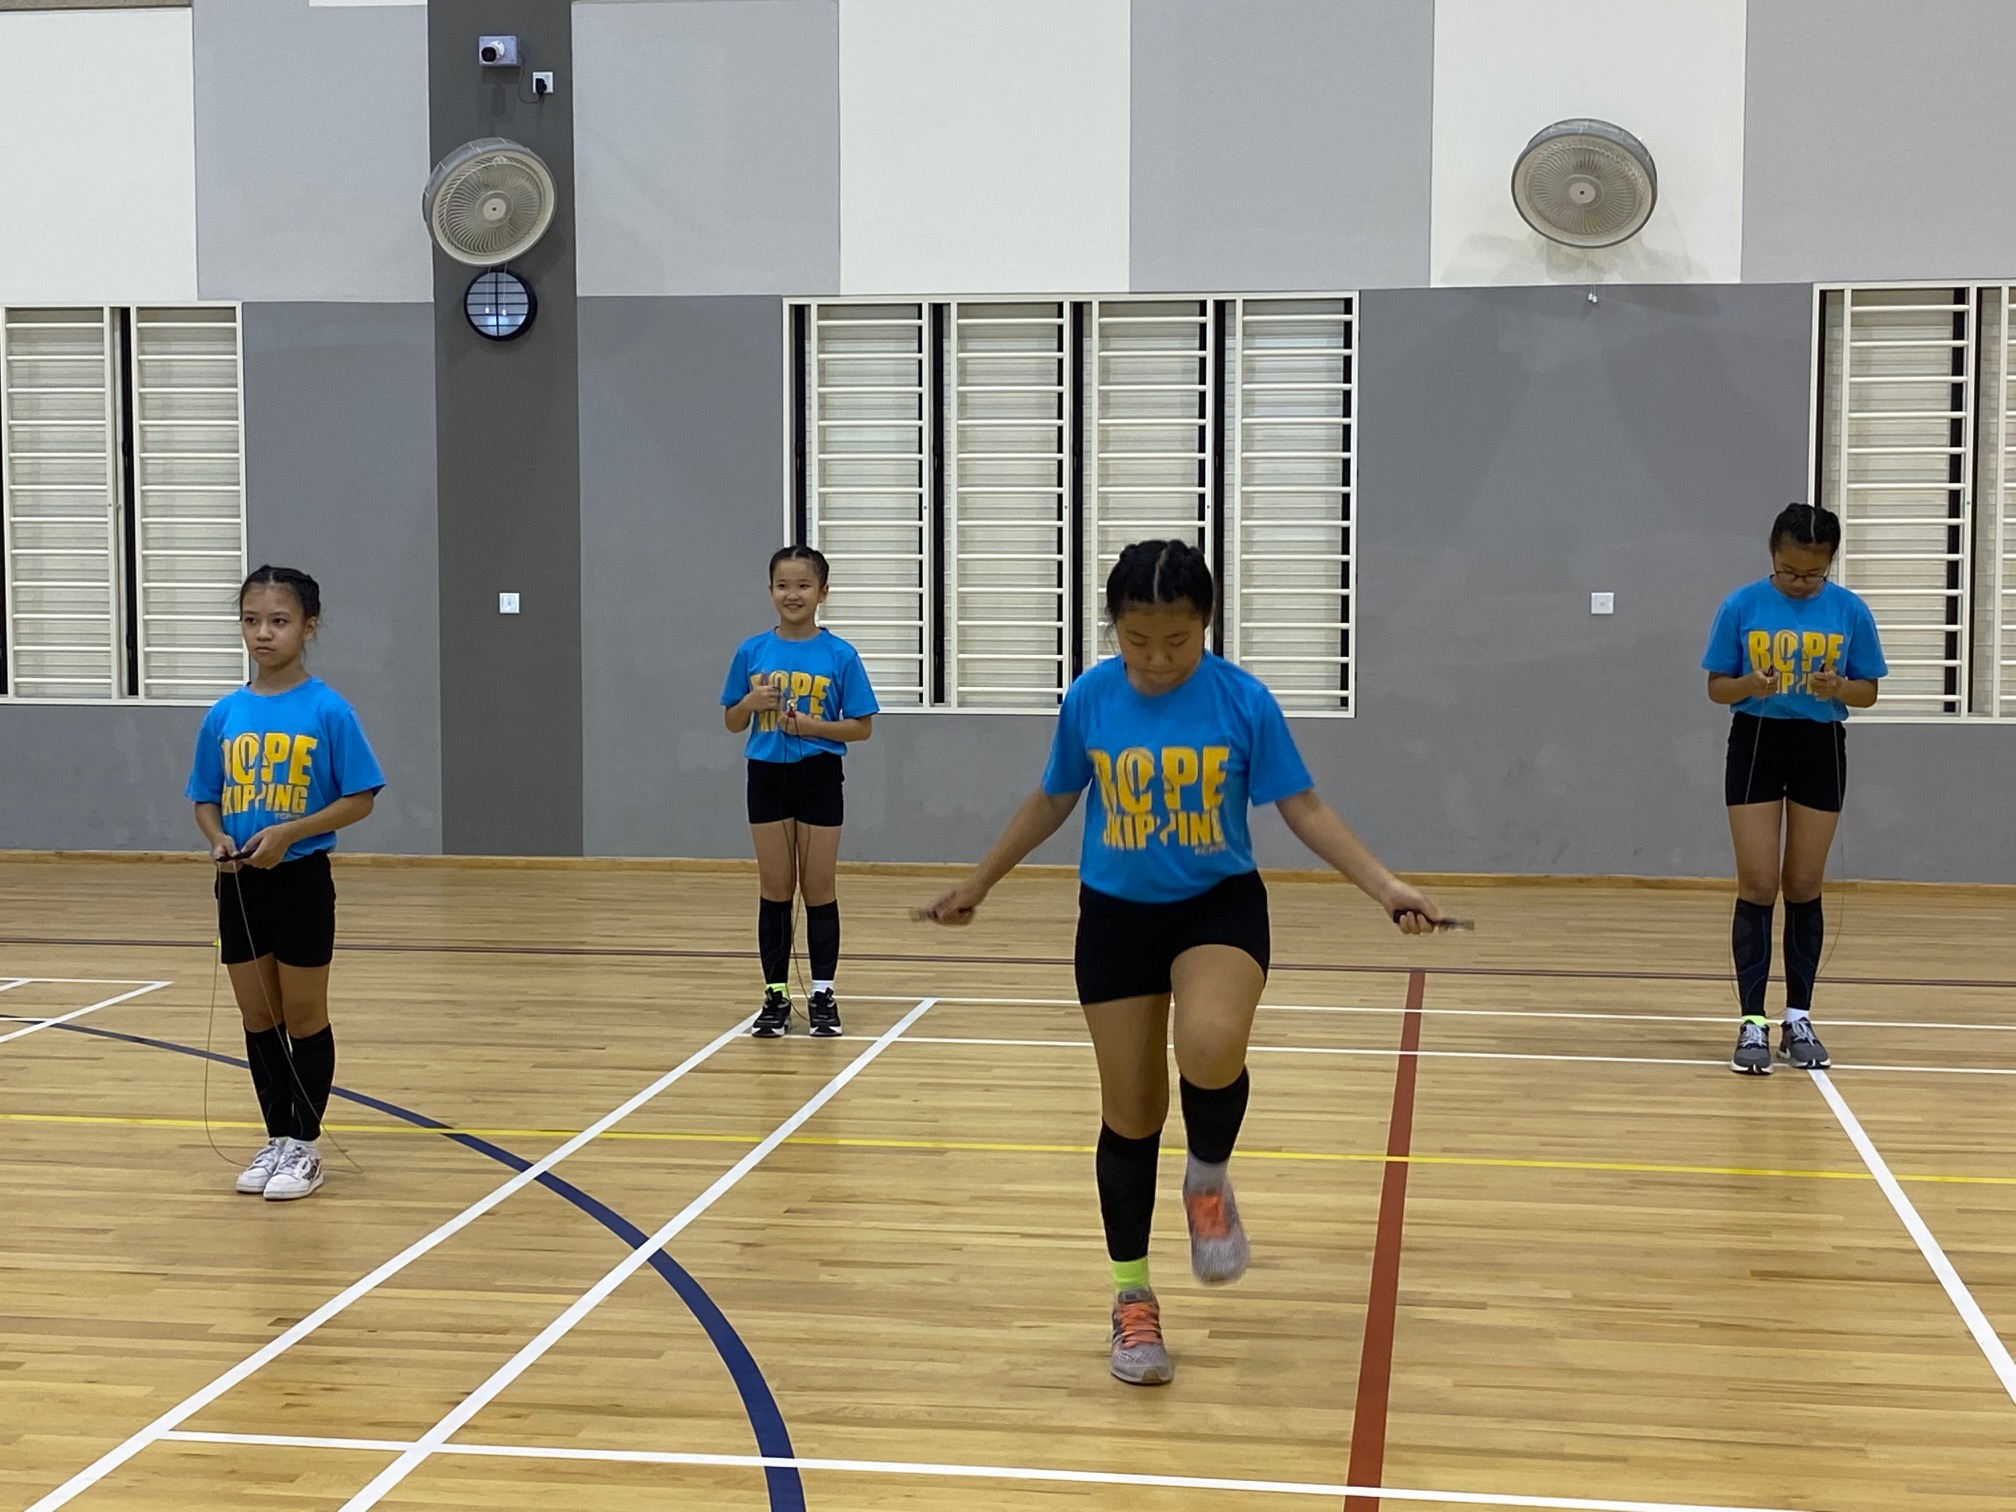 NSG Rope Skipping : Youngsters deliver creative & exciting skills after months of hardwork and training!